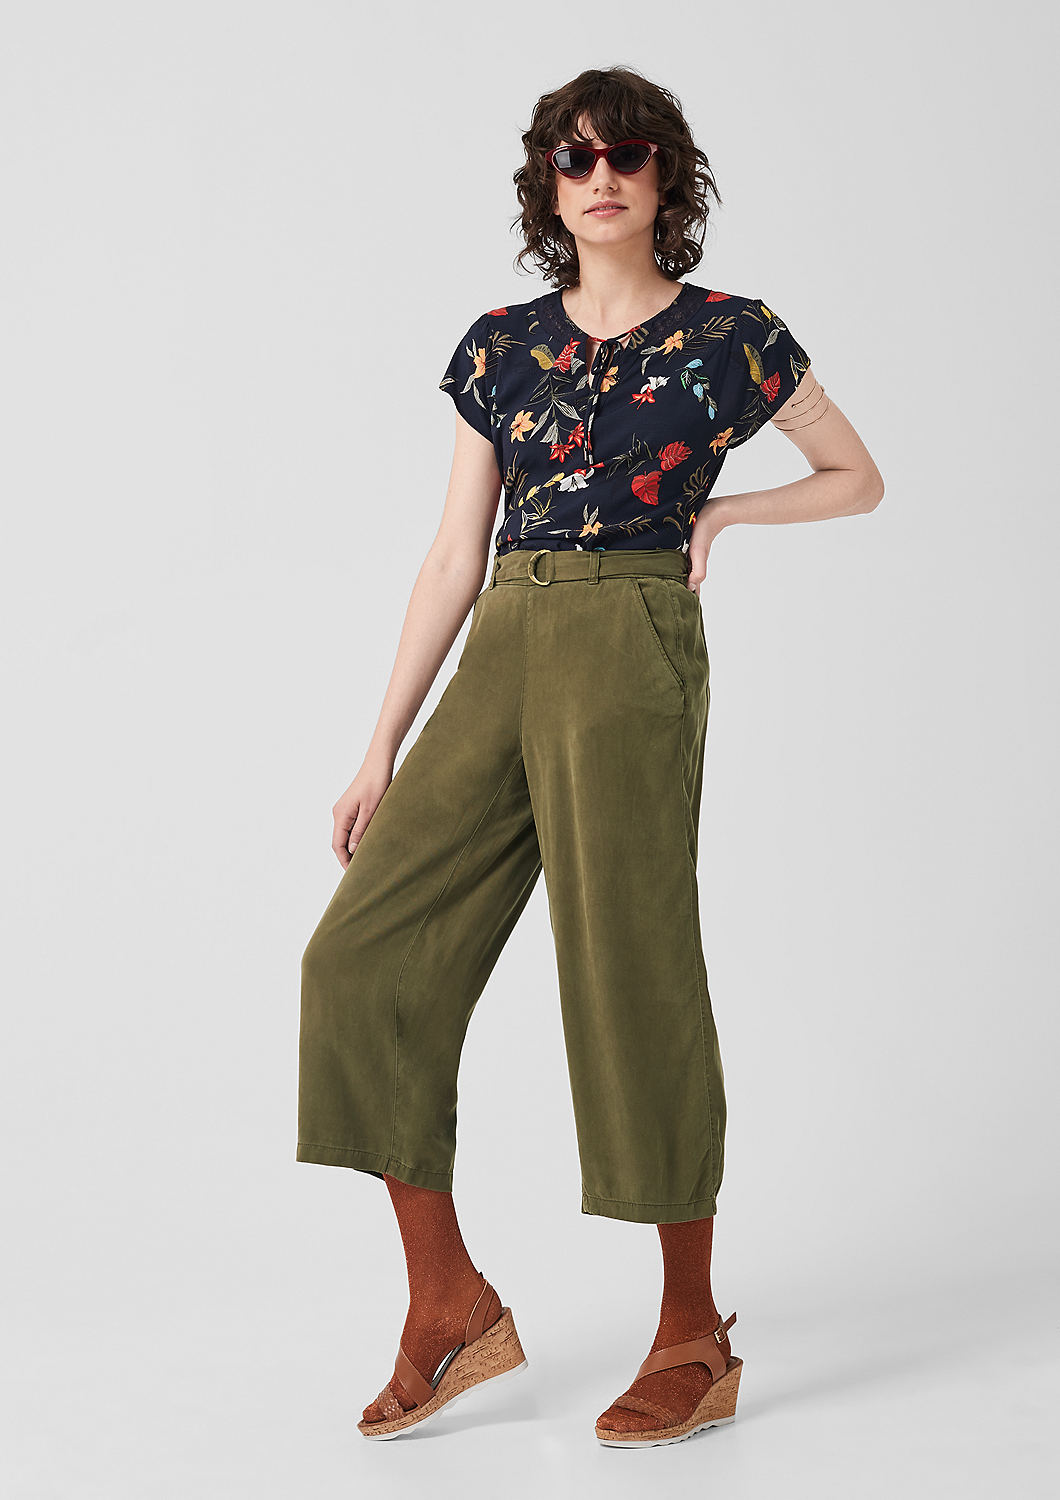 s.Oliver - Culotte: Twillhose aus Lyocell - 1